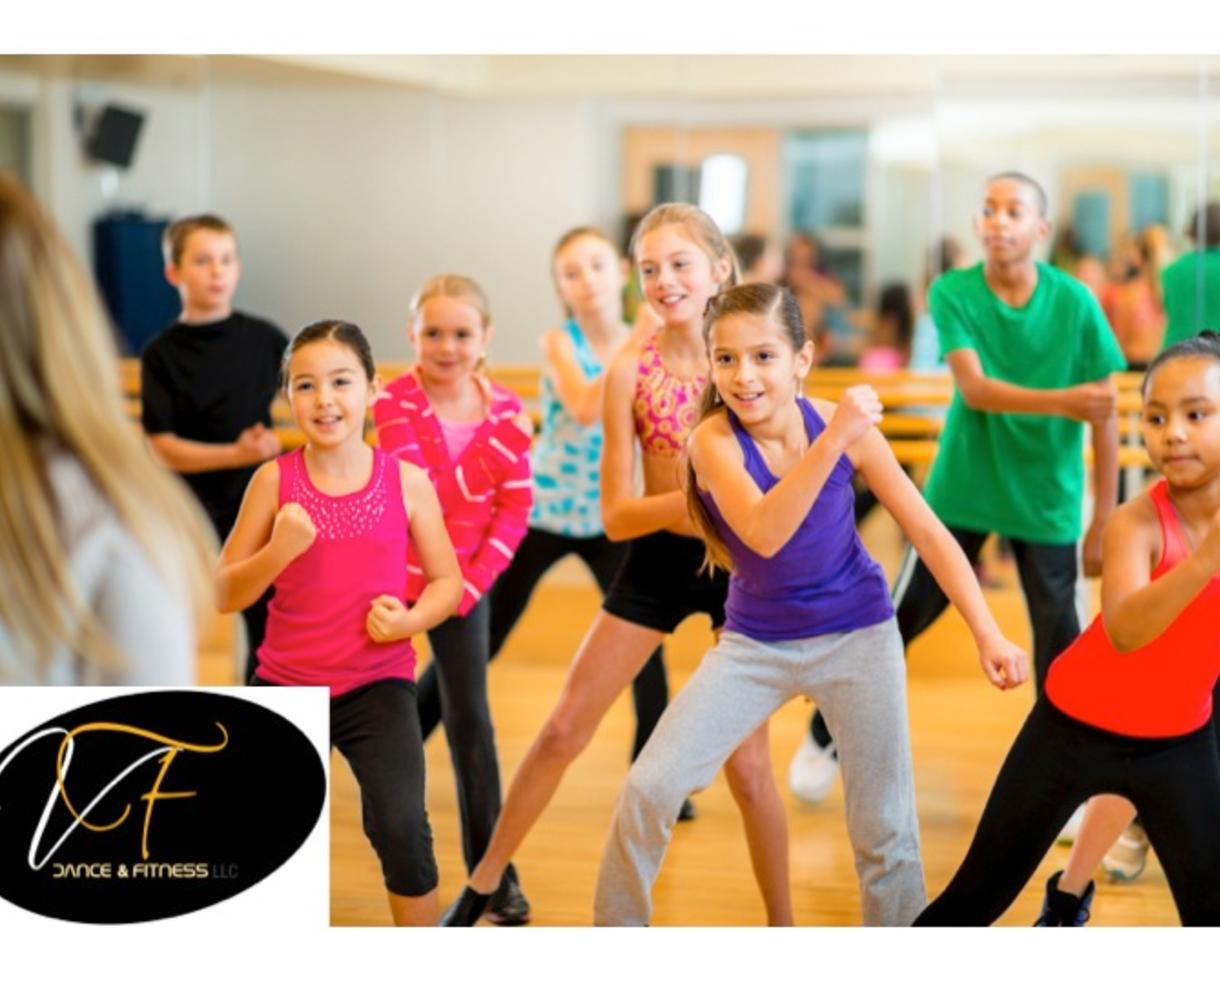 $500 for Spring Dance Training and Performance Classes for Ages 6-17 at VF Dance and Fitness - Germantown (75% Off!)